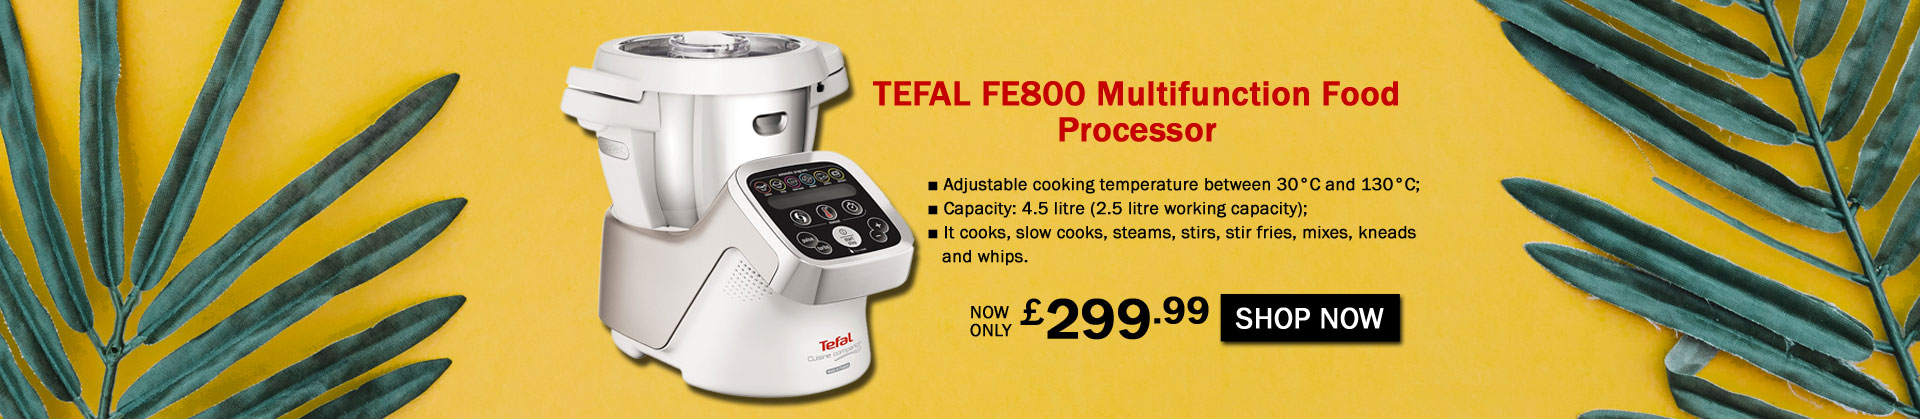 Tefal Multifunctional Food Processor